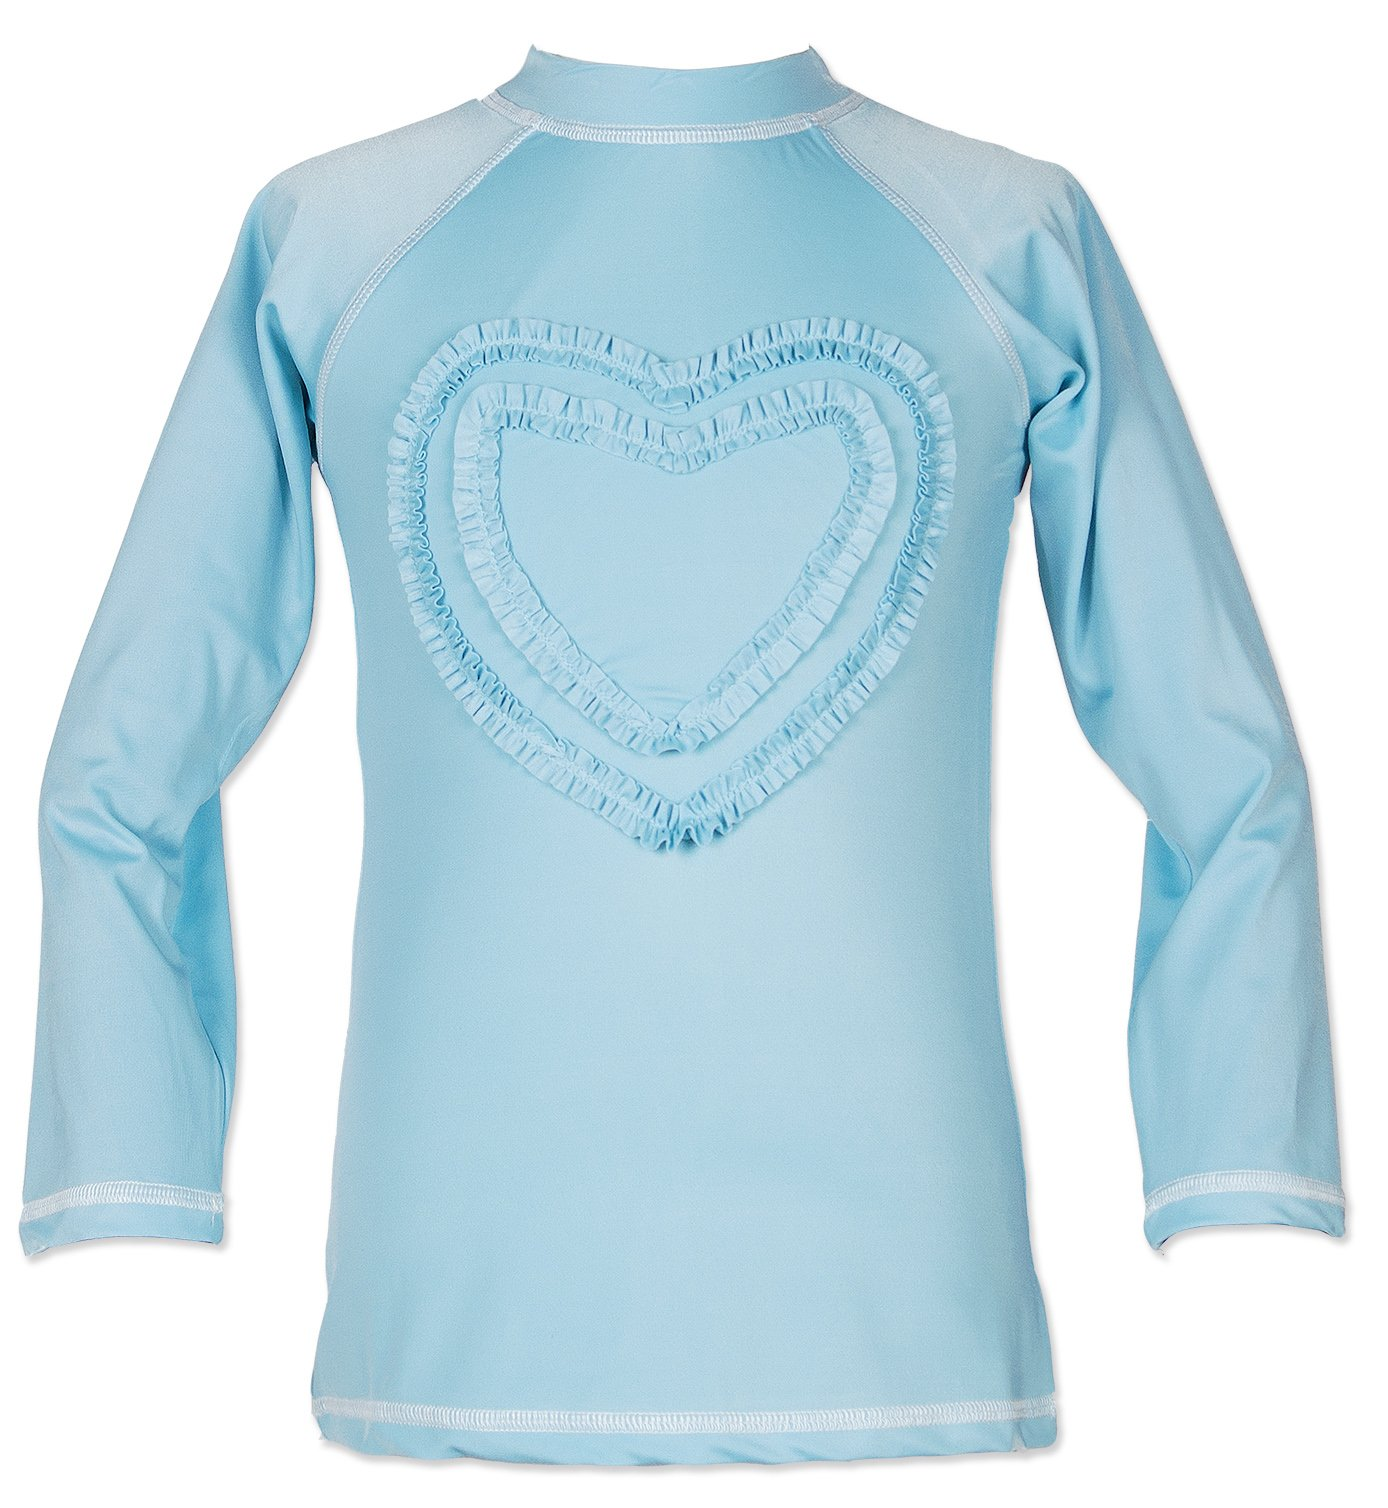 Teen Big Girls' Ruffled Valentine Long-Sleeve Rash Guard Swim Shirts UPF 50+ Sun Protective Sky Blue 8-9